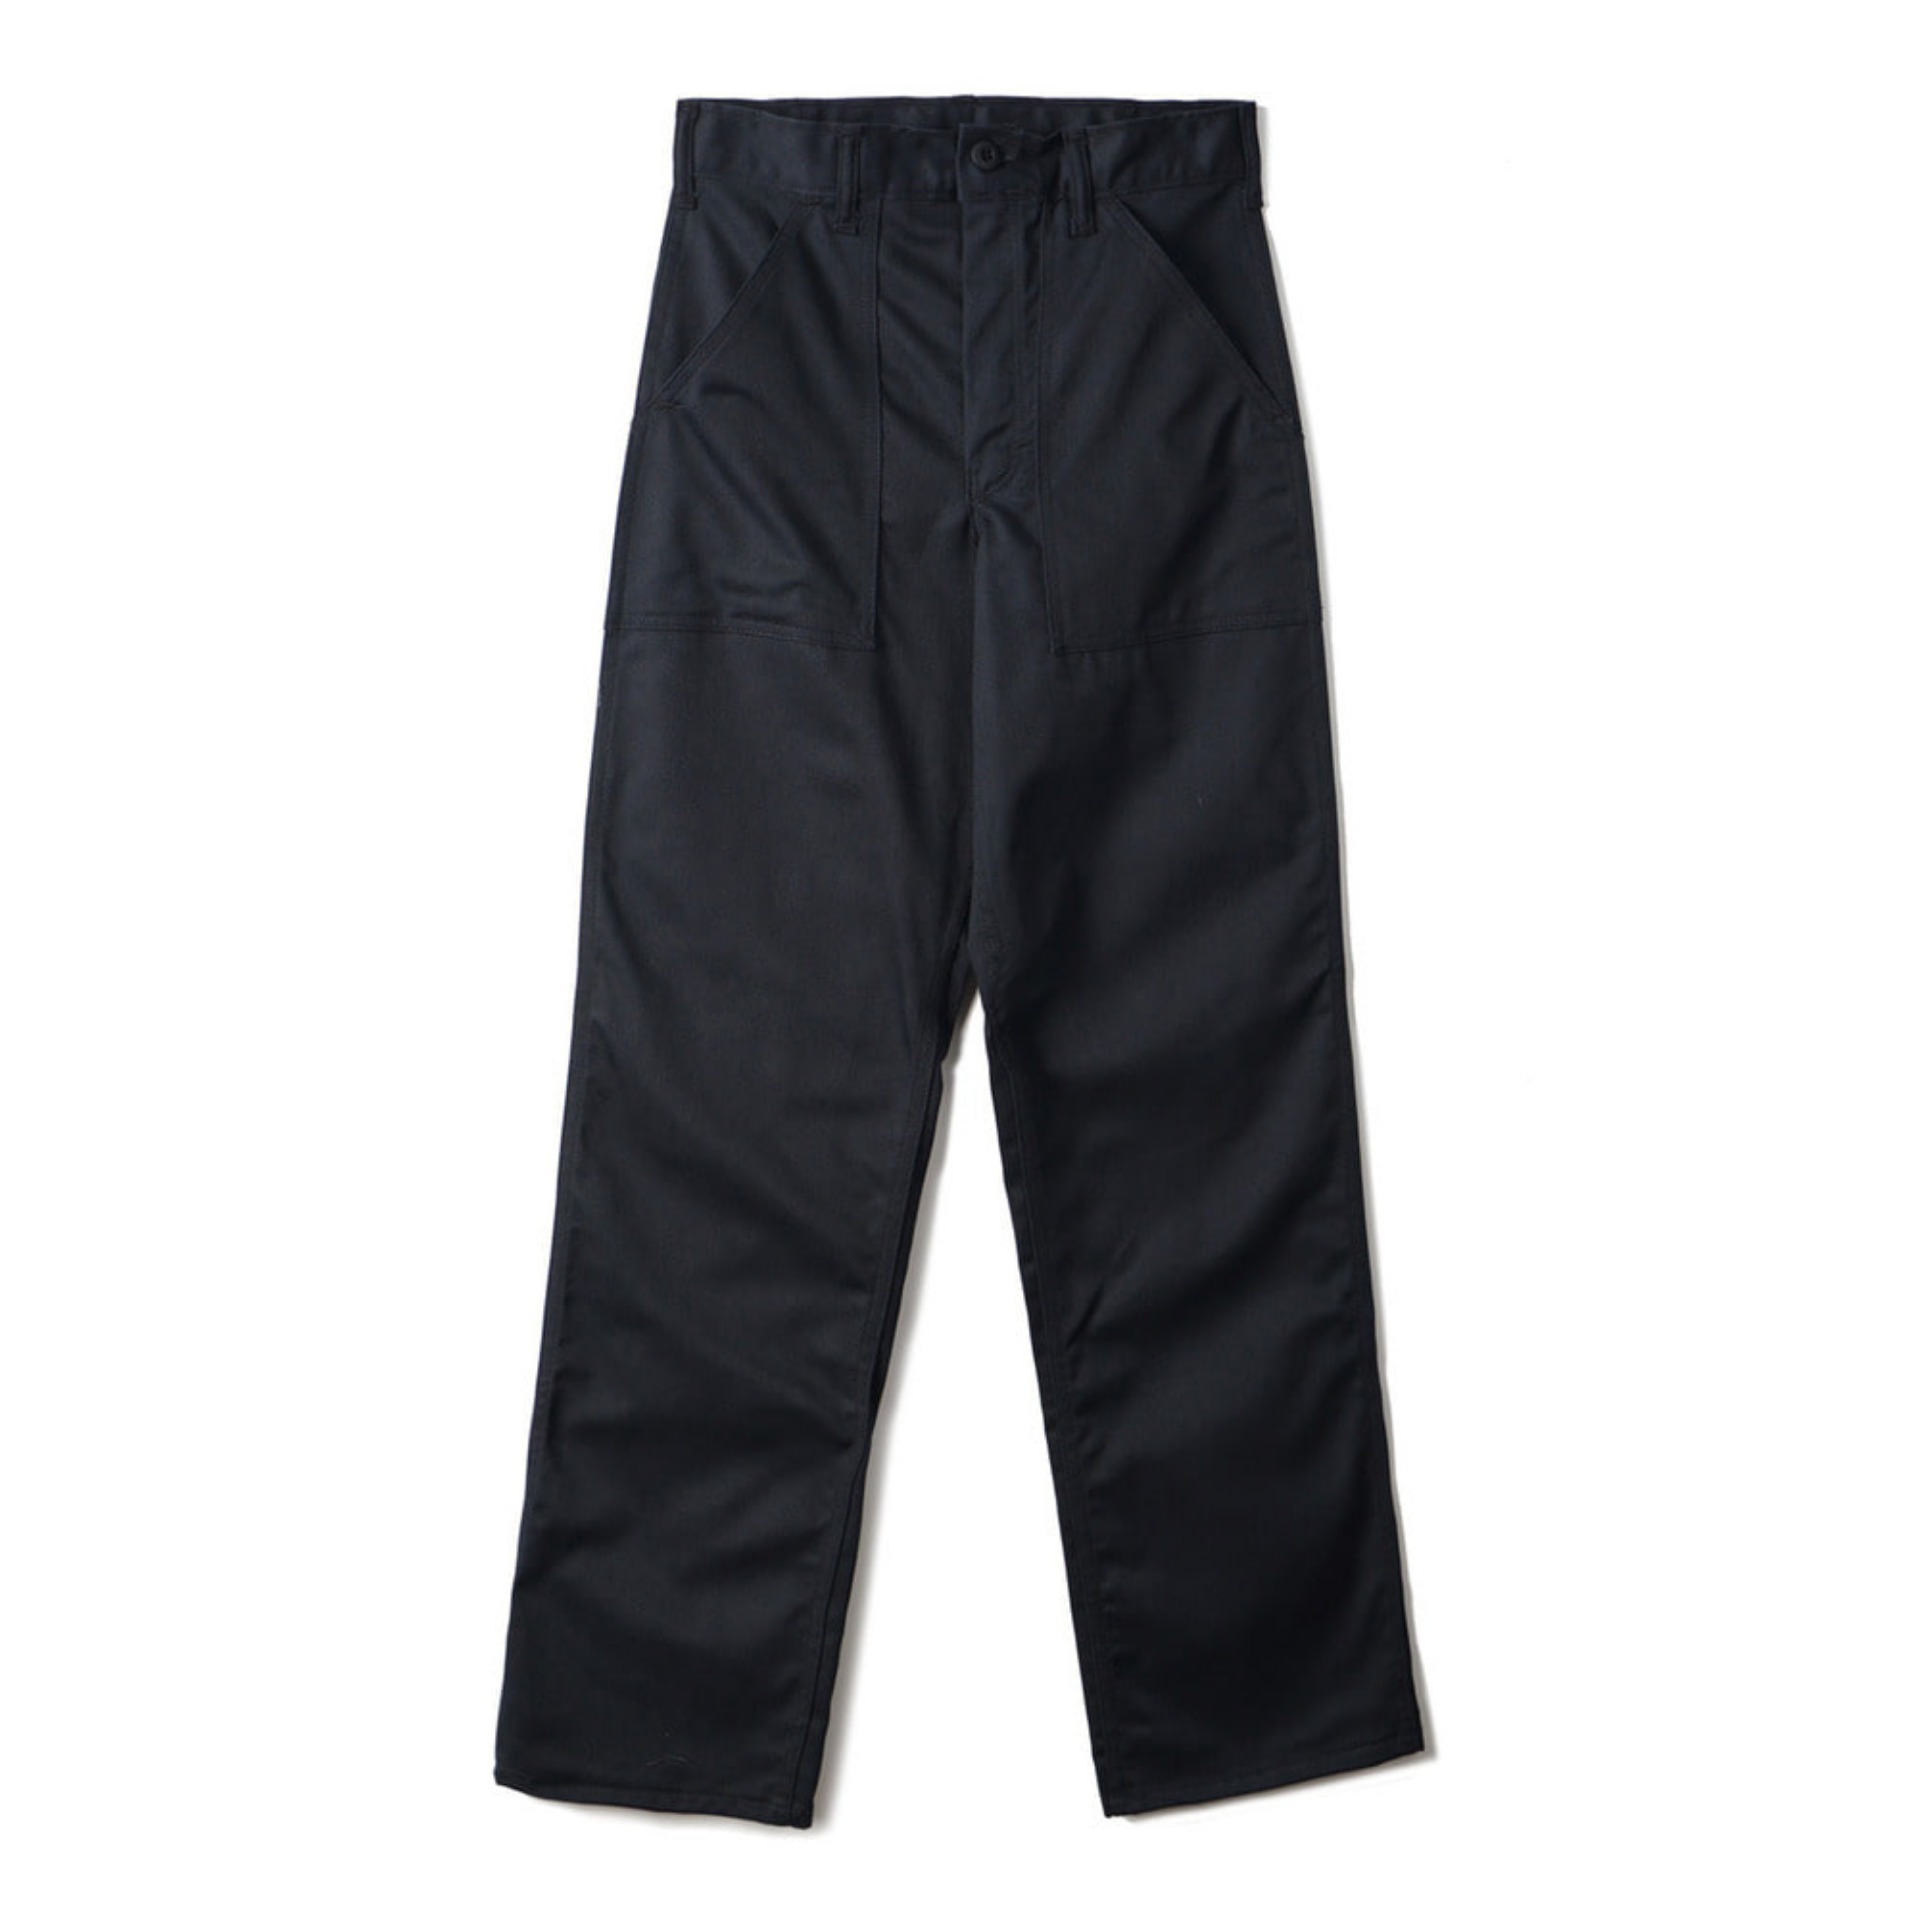 4 Pocket Fatigue Pants 1108P Black Twill(BLACK)